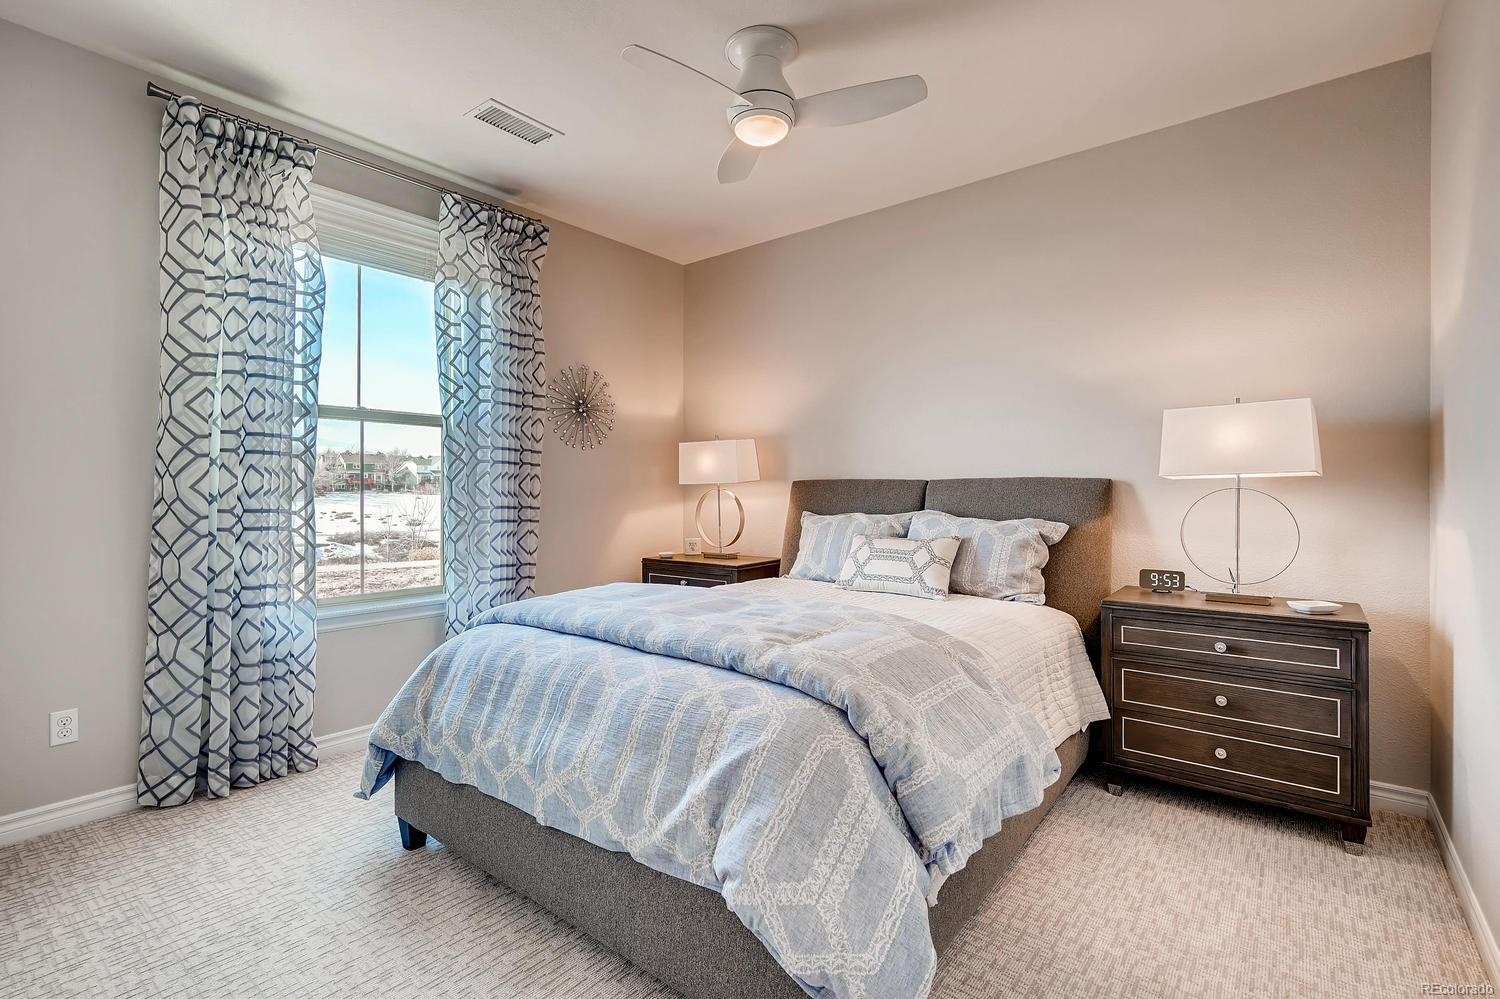 Bedroom 3 includes newer carpeting, paint, and window treatments enjoying open s